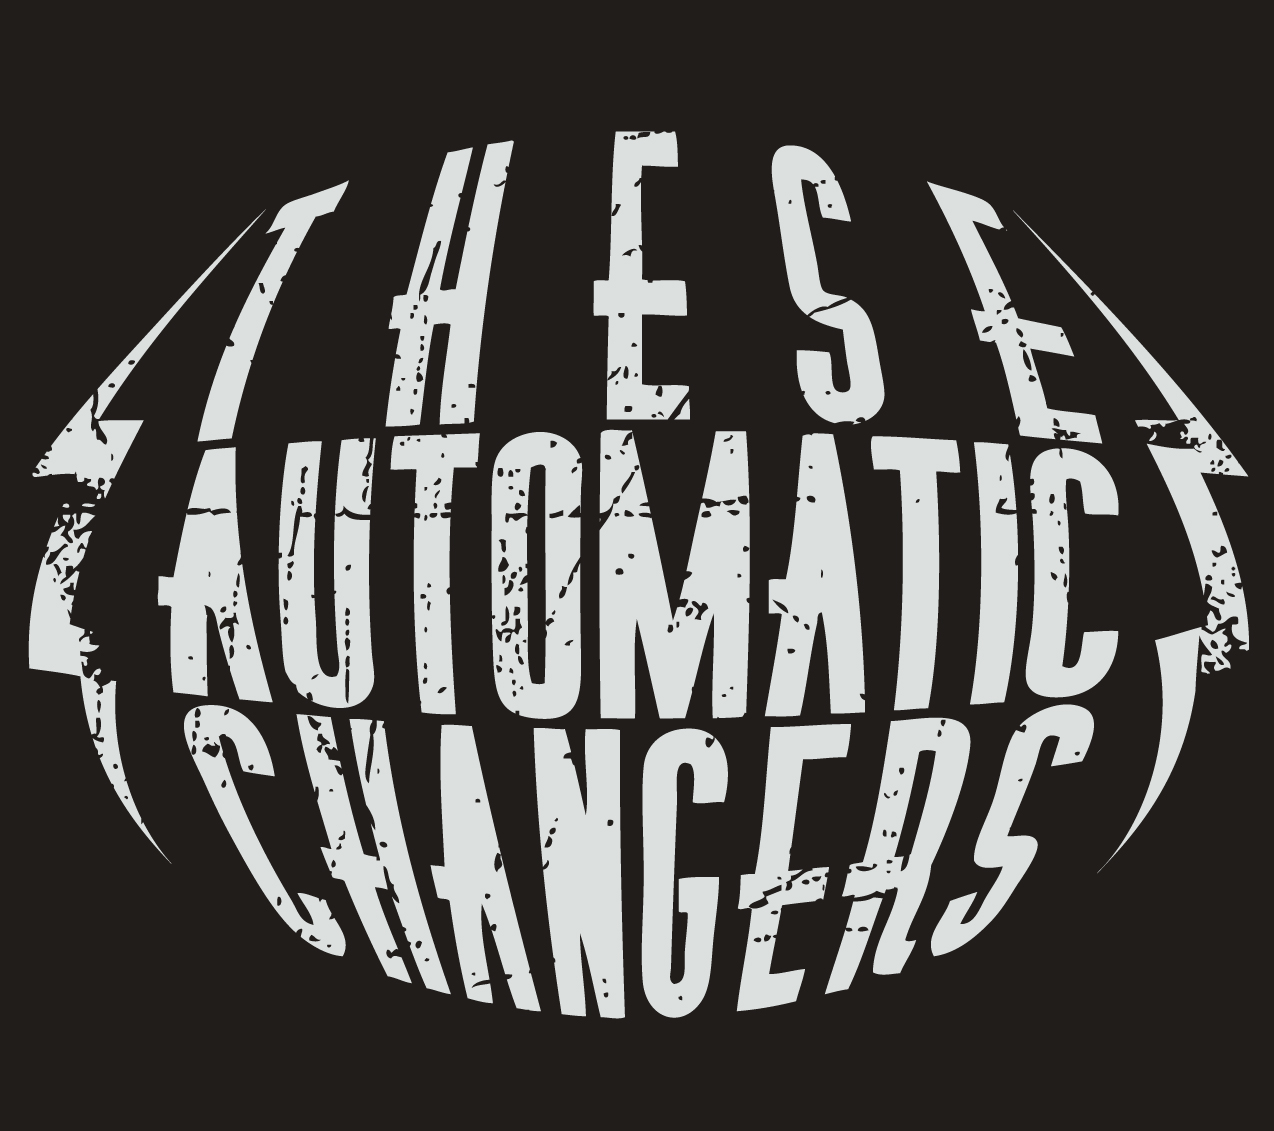 These Automatic Changers